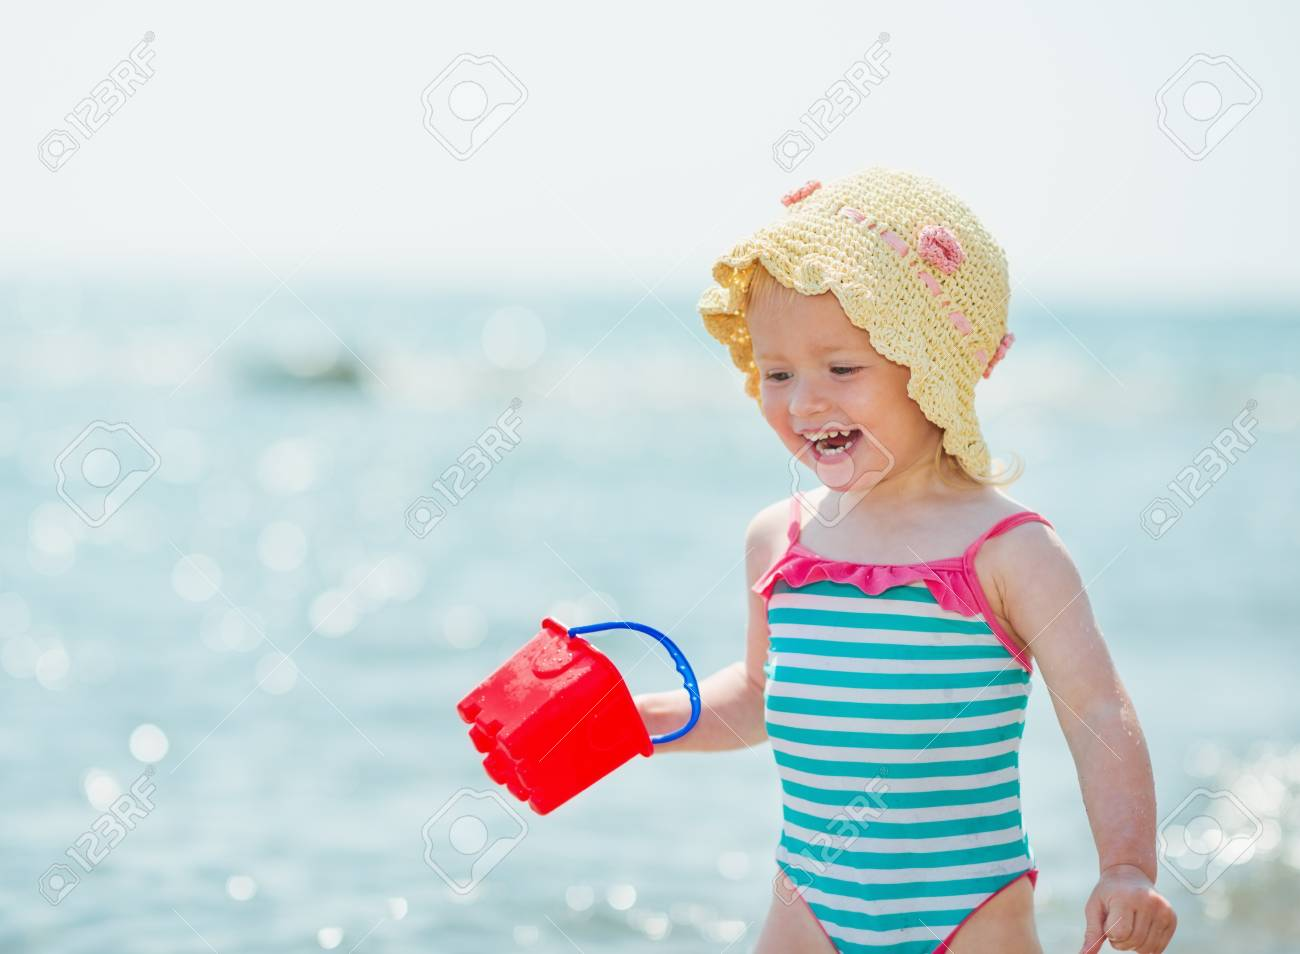 Smiling baby playing with pail on seashore Stock Photo - 17283116